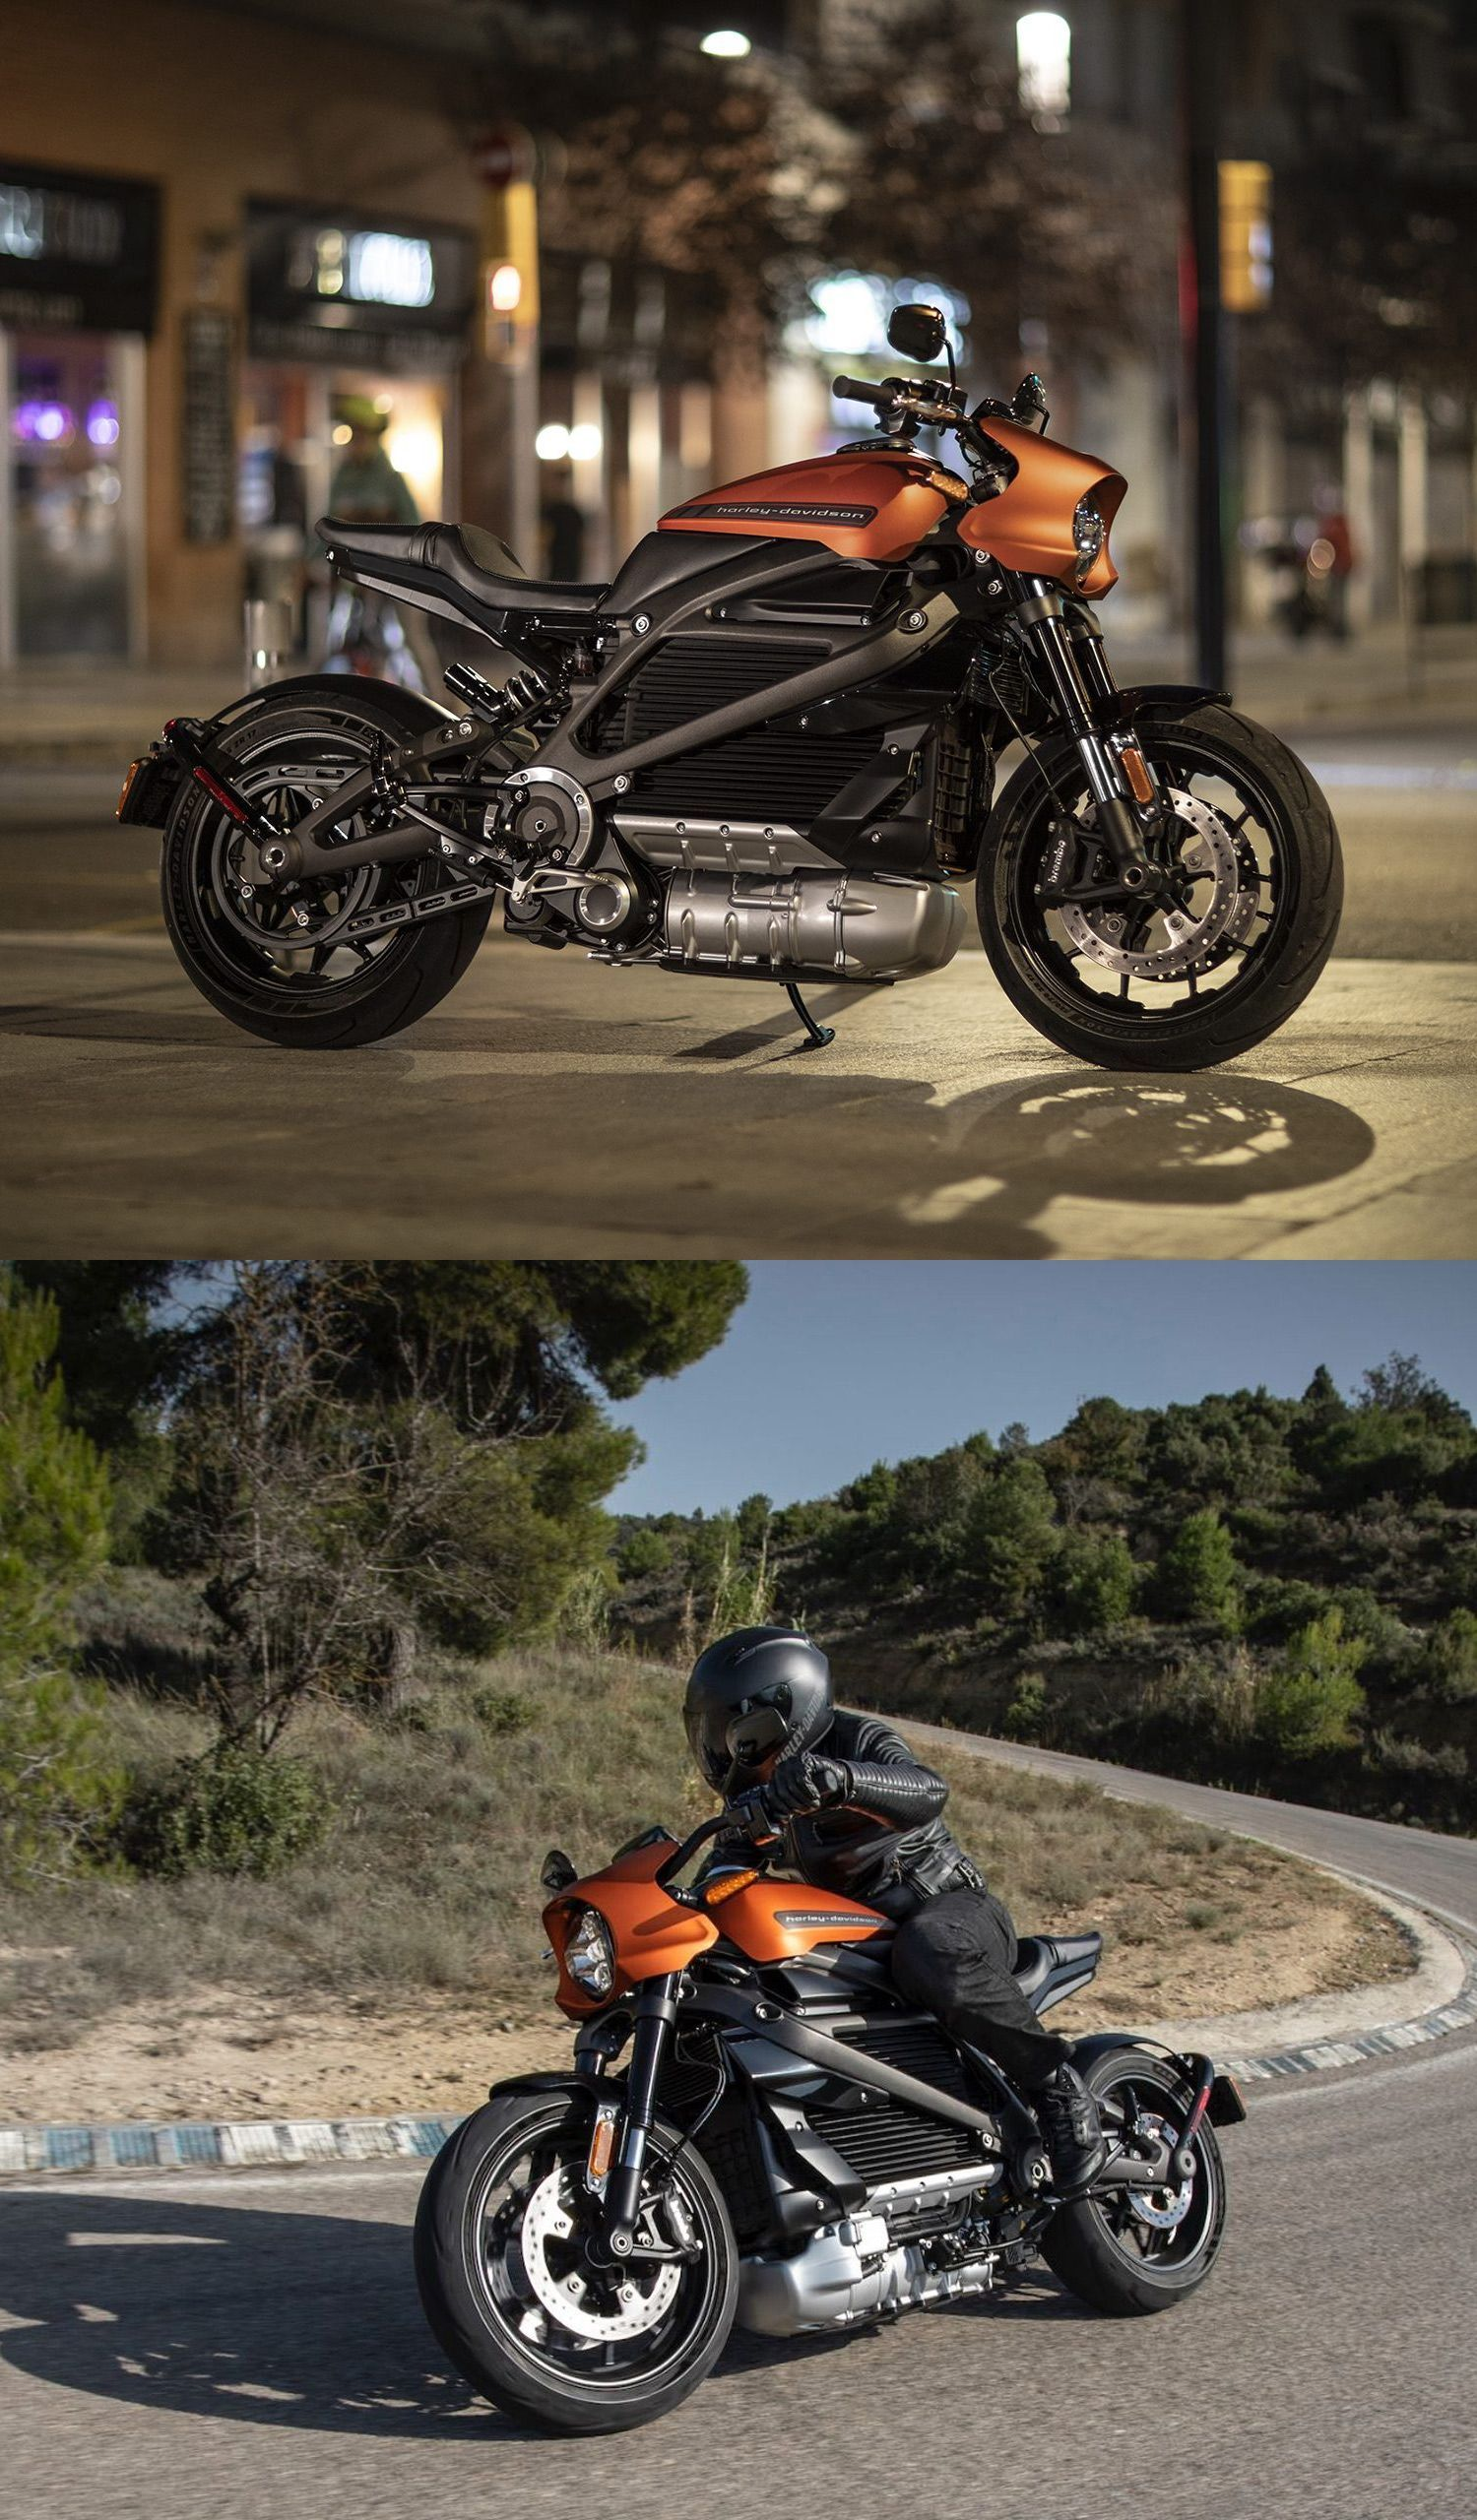 New Harley Davidson Livewire Full Electric Motorcycle All Photos Ride Out Video Now Online At Electric Motorcycle Harley Davidson Harley Davidson Pictures